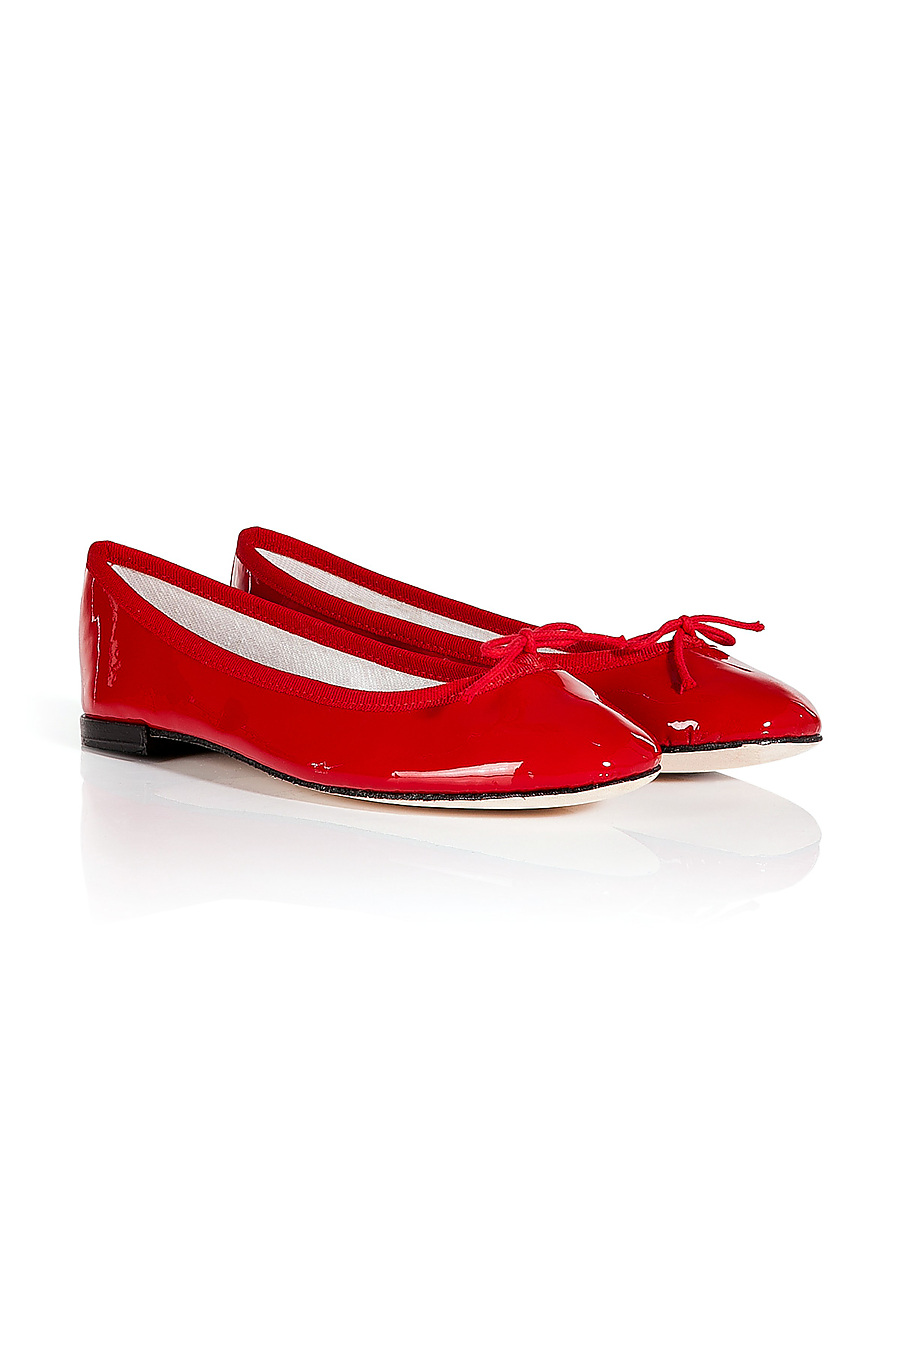 Repetto Patent Leather Cendrillon Ballet Flats